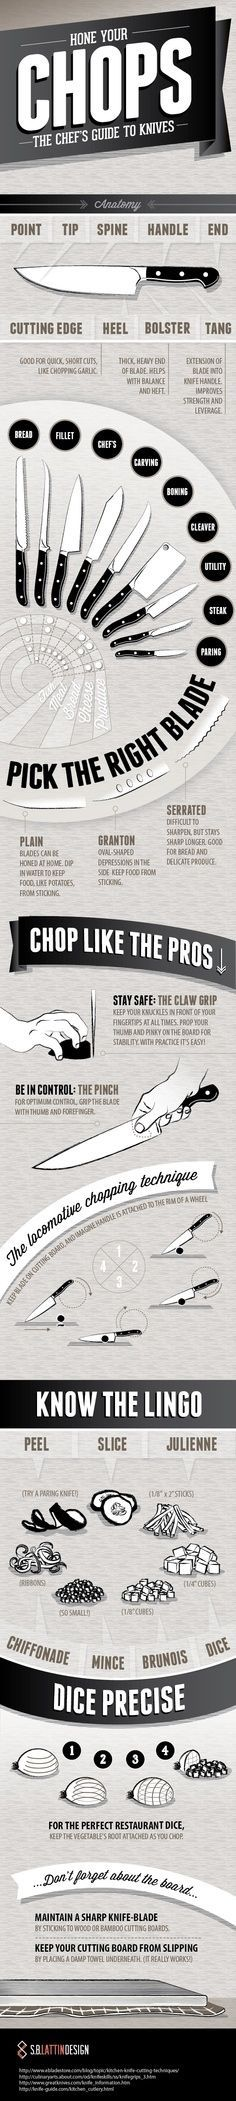 Know Your Knives and How to Use Them